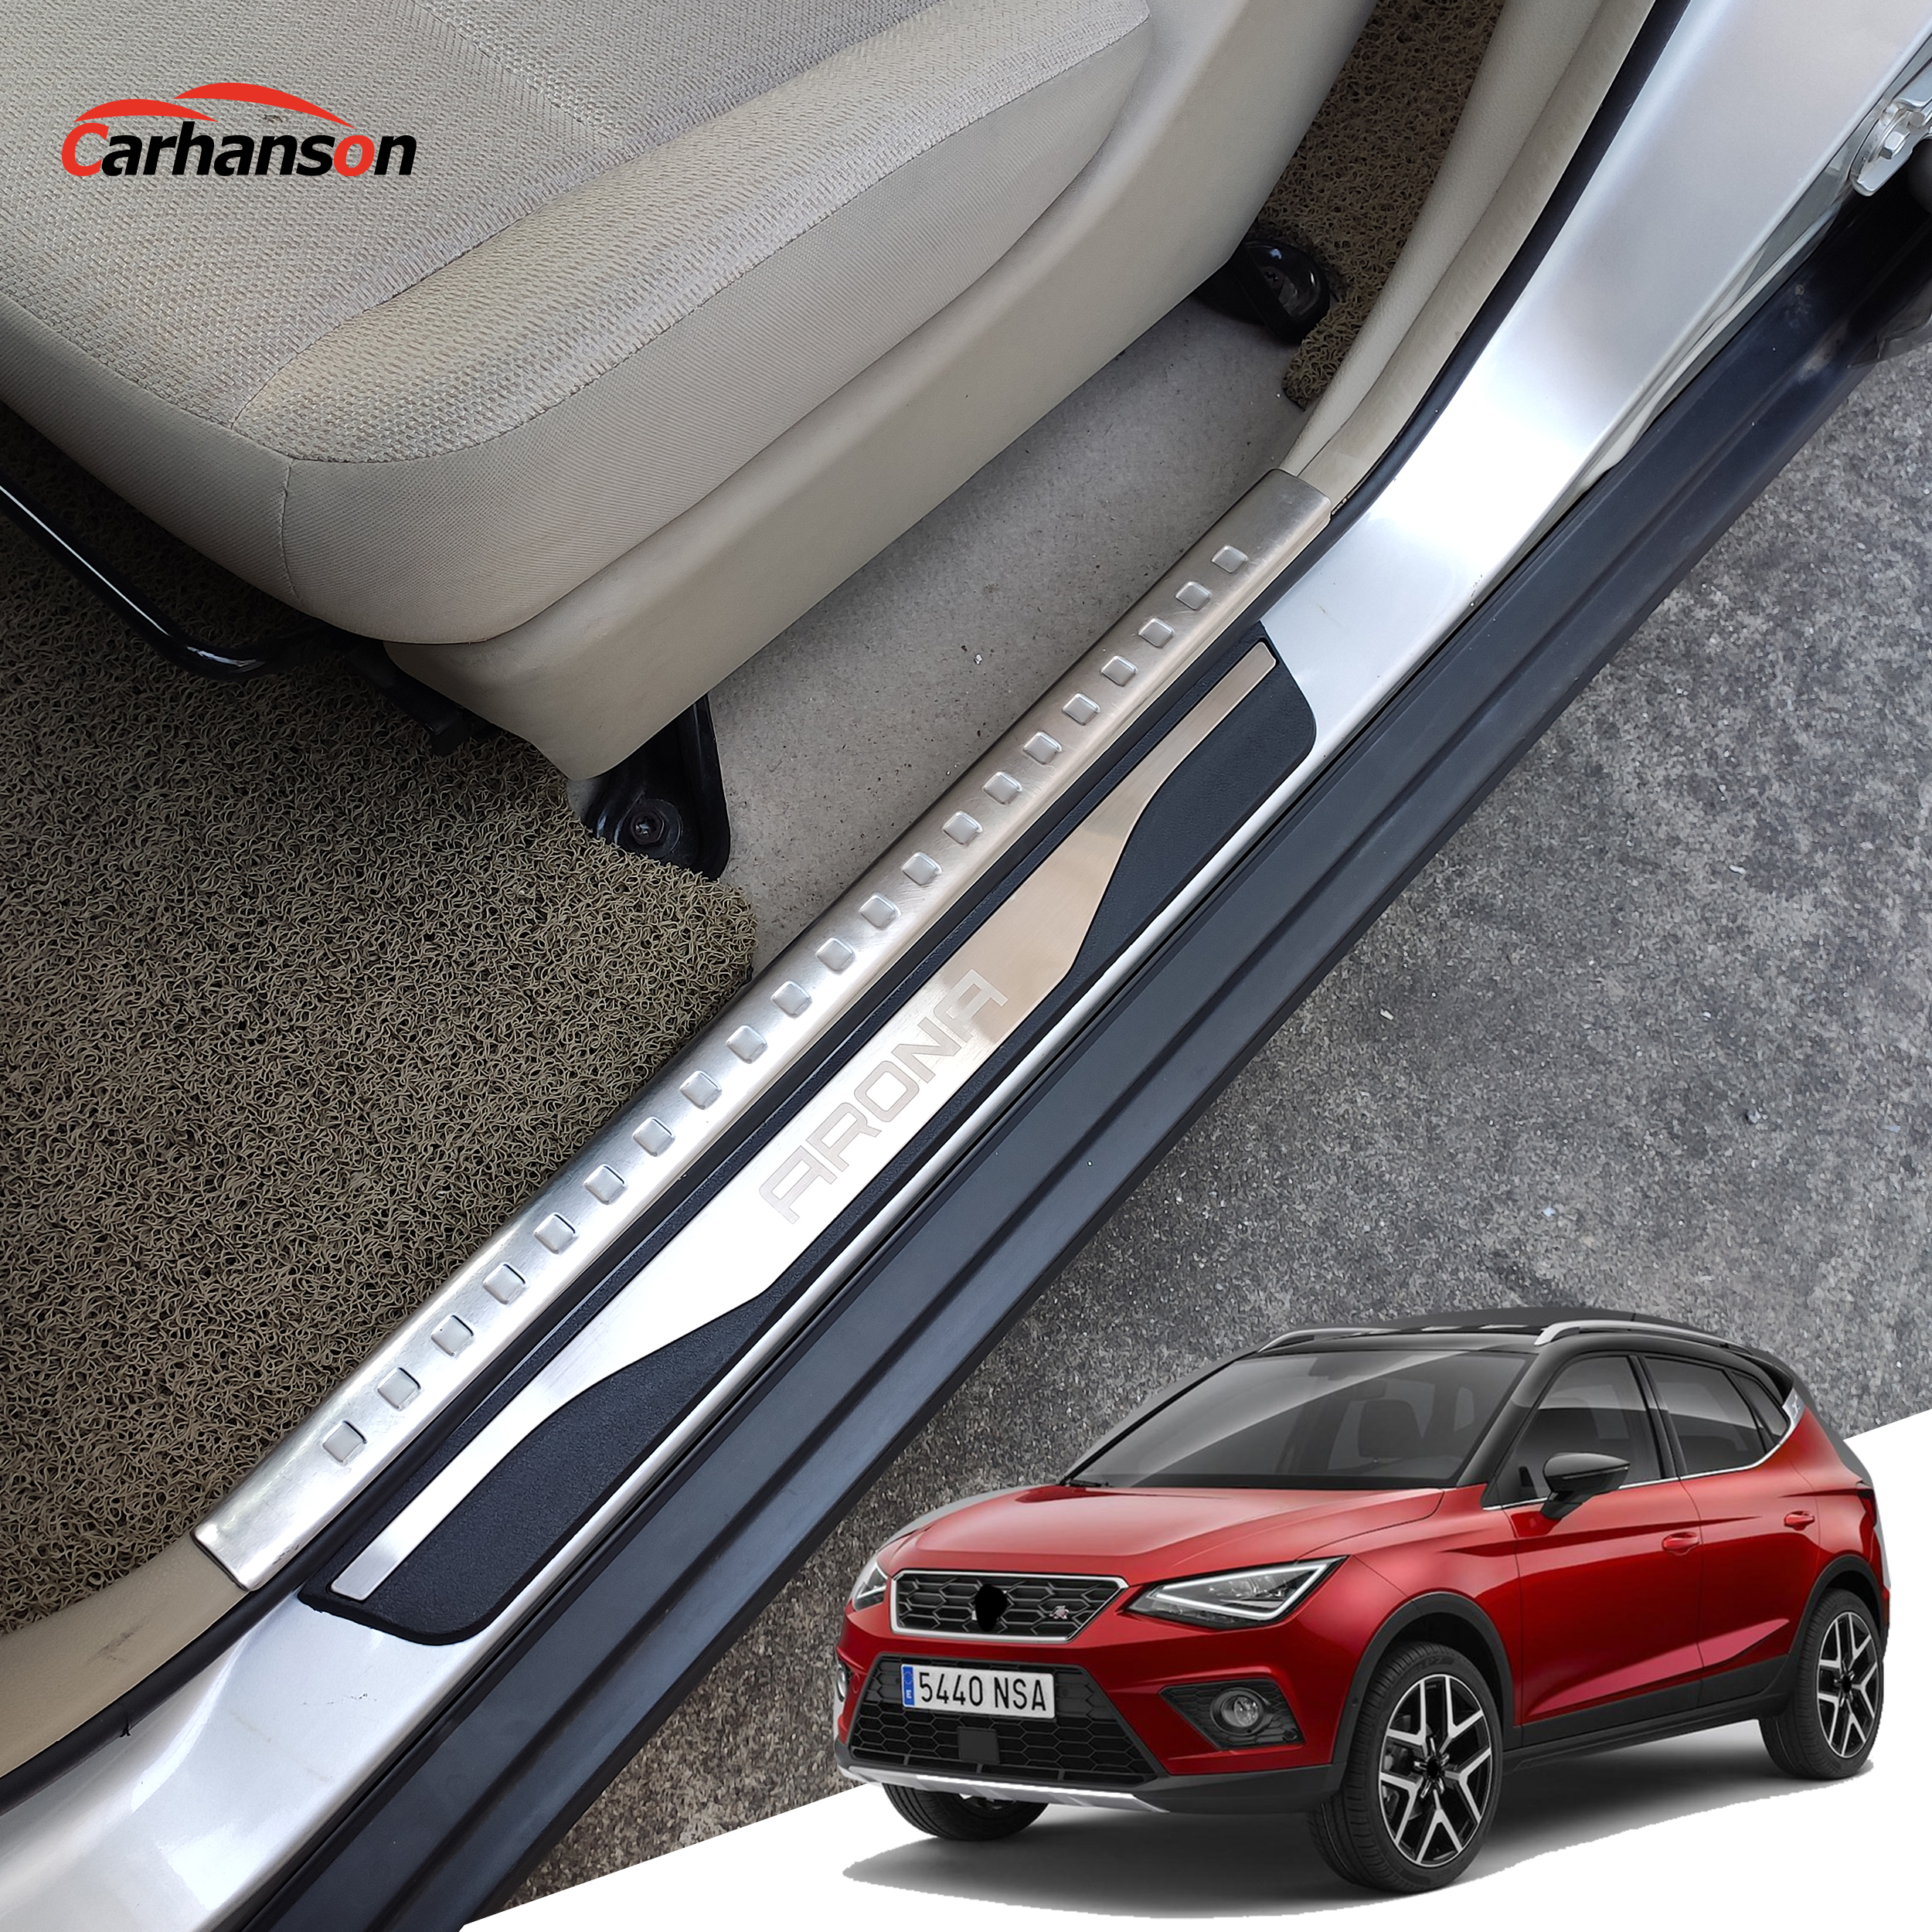 For SEAT ARONA FR  Car Sticker Accessories Door Sill Strip Auto Cover Plates Stainless Steel Protectors Guards Styling 2017-2020